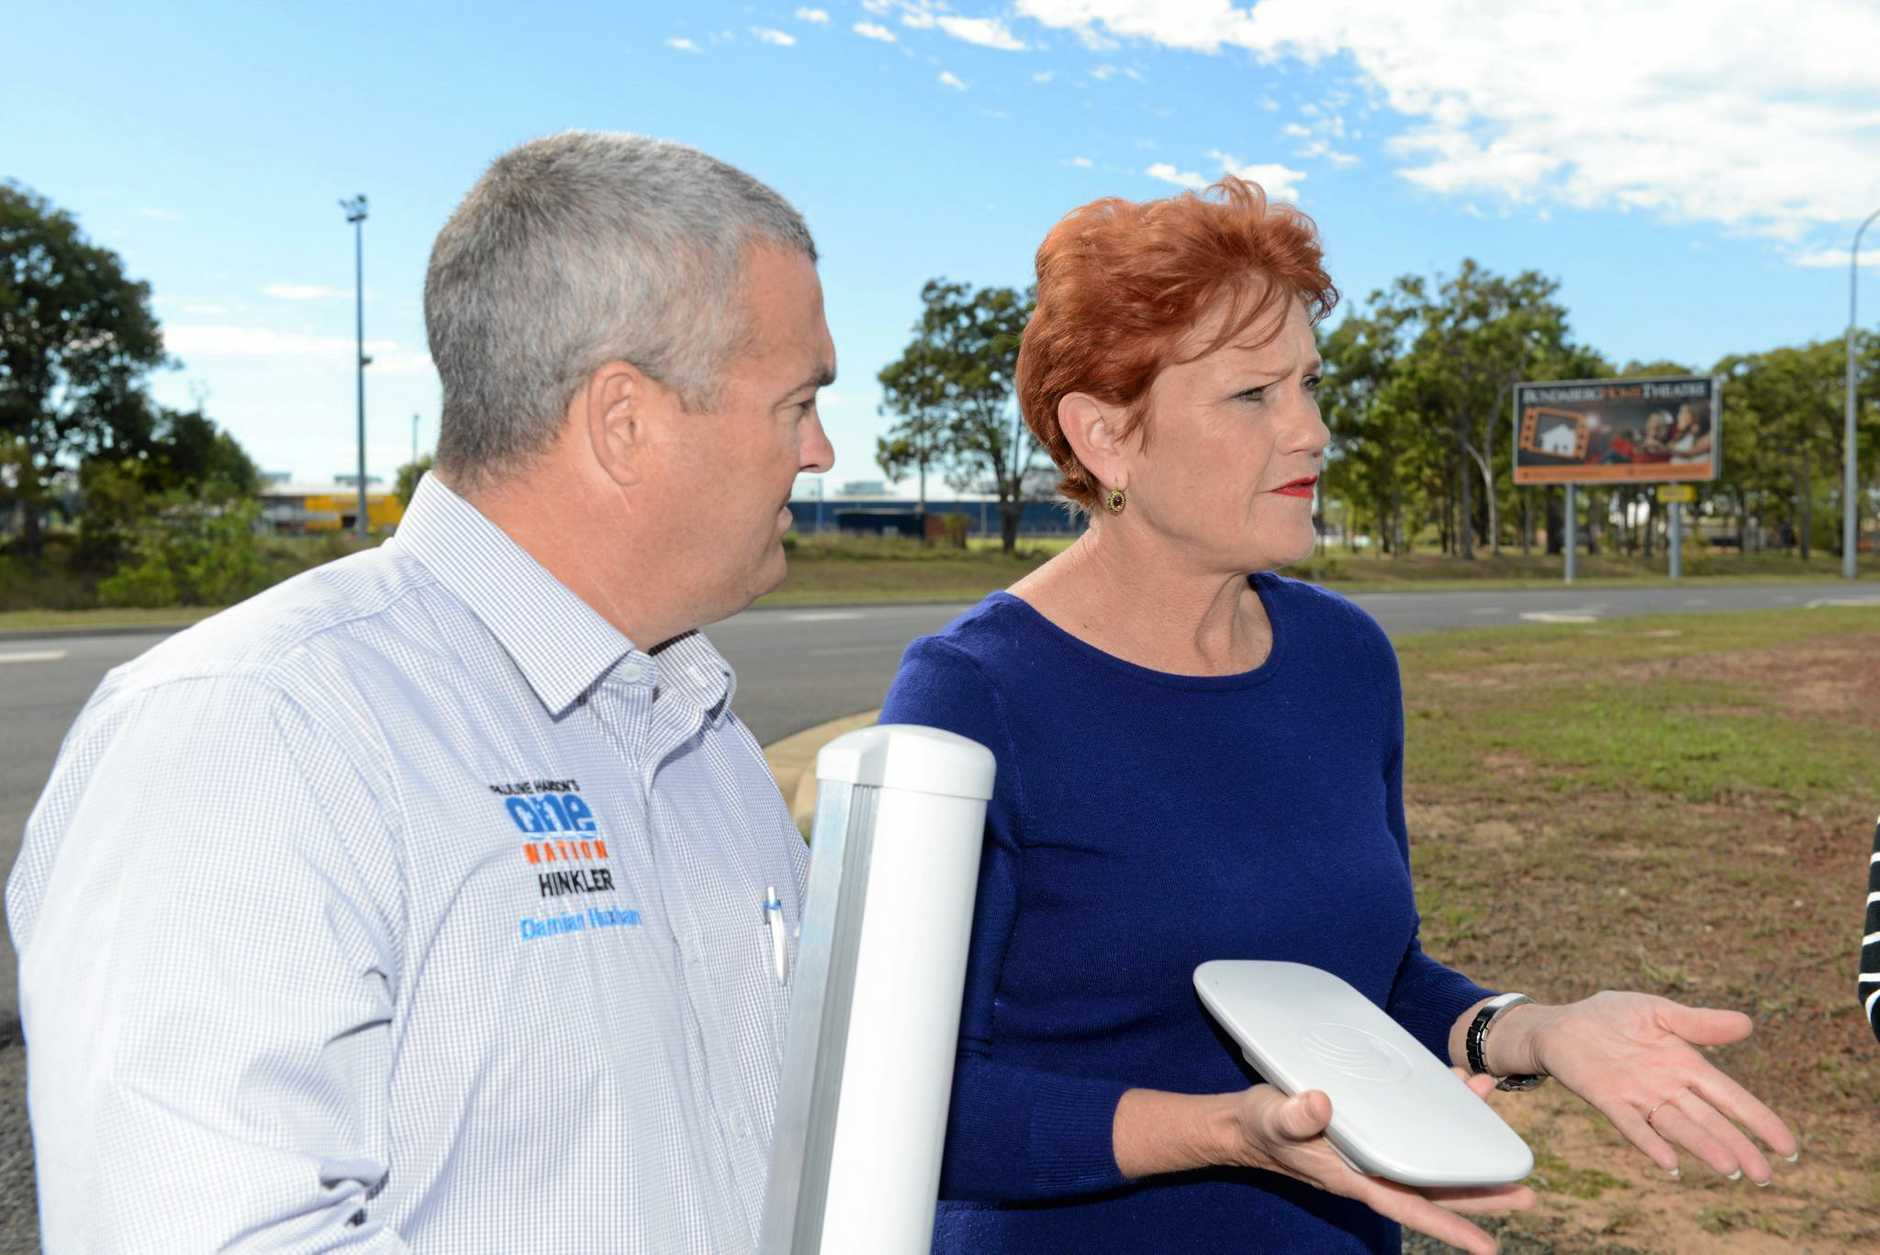 WIRELESS THE WAY: Damian Huxham and Pauline Hanson say the NBN will be outdated before it's completed in Bundaberg.